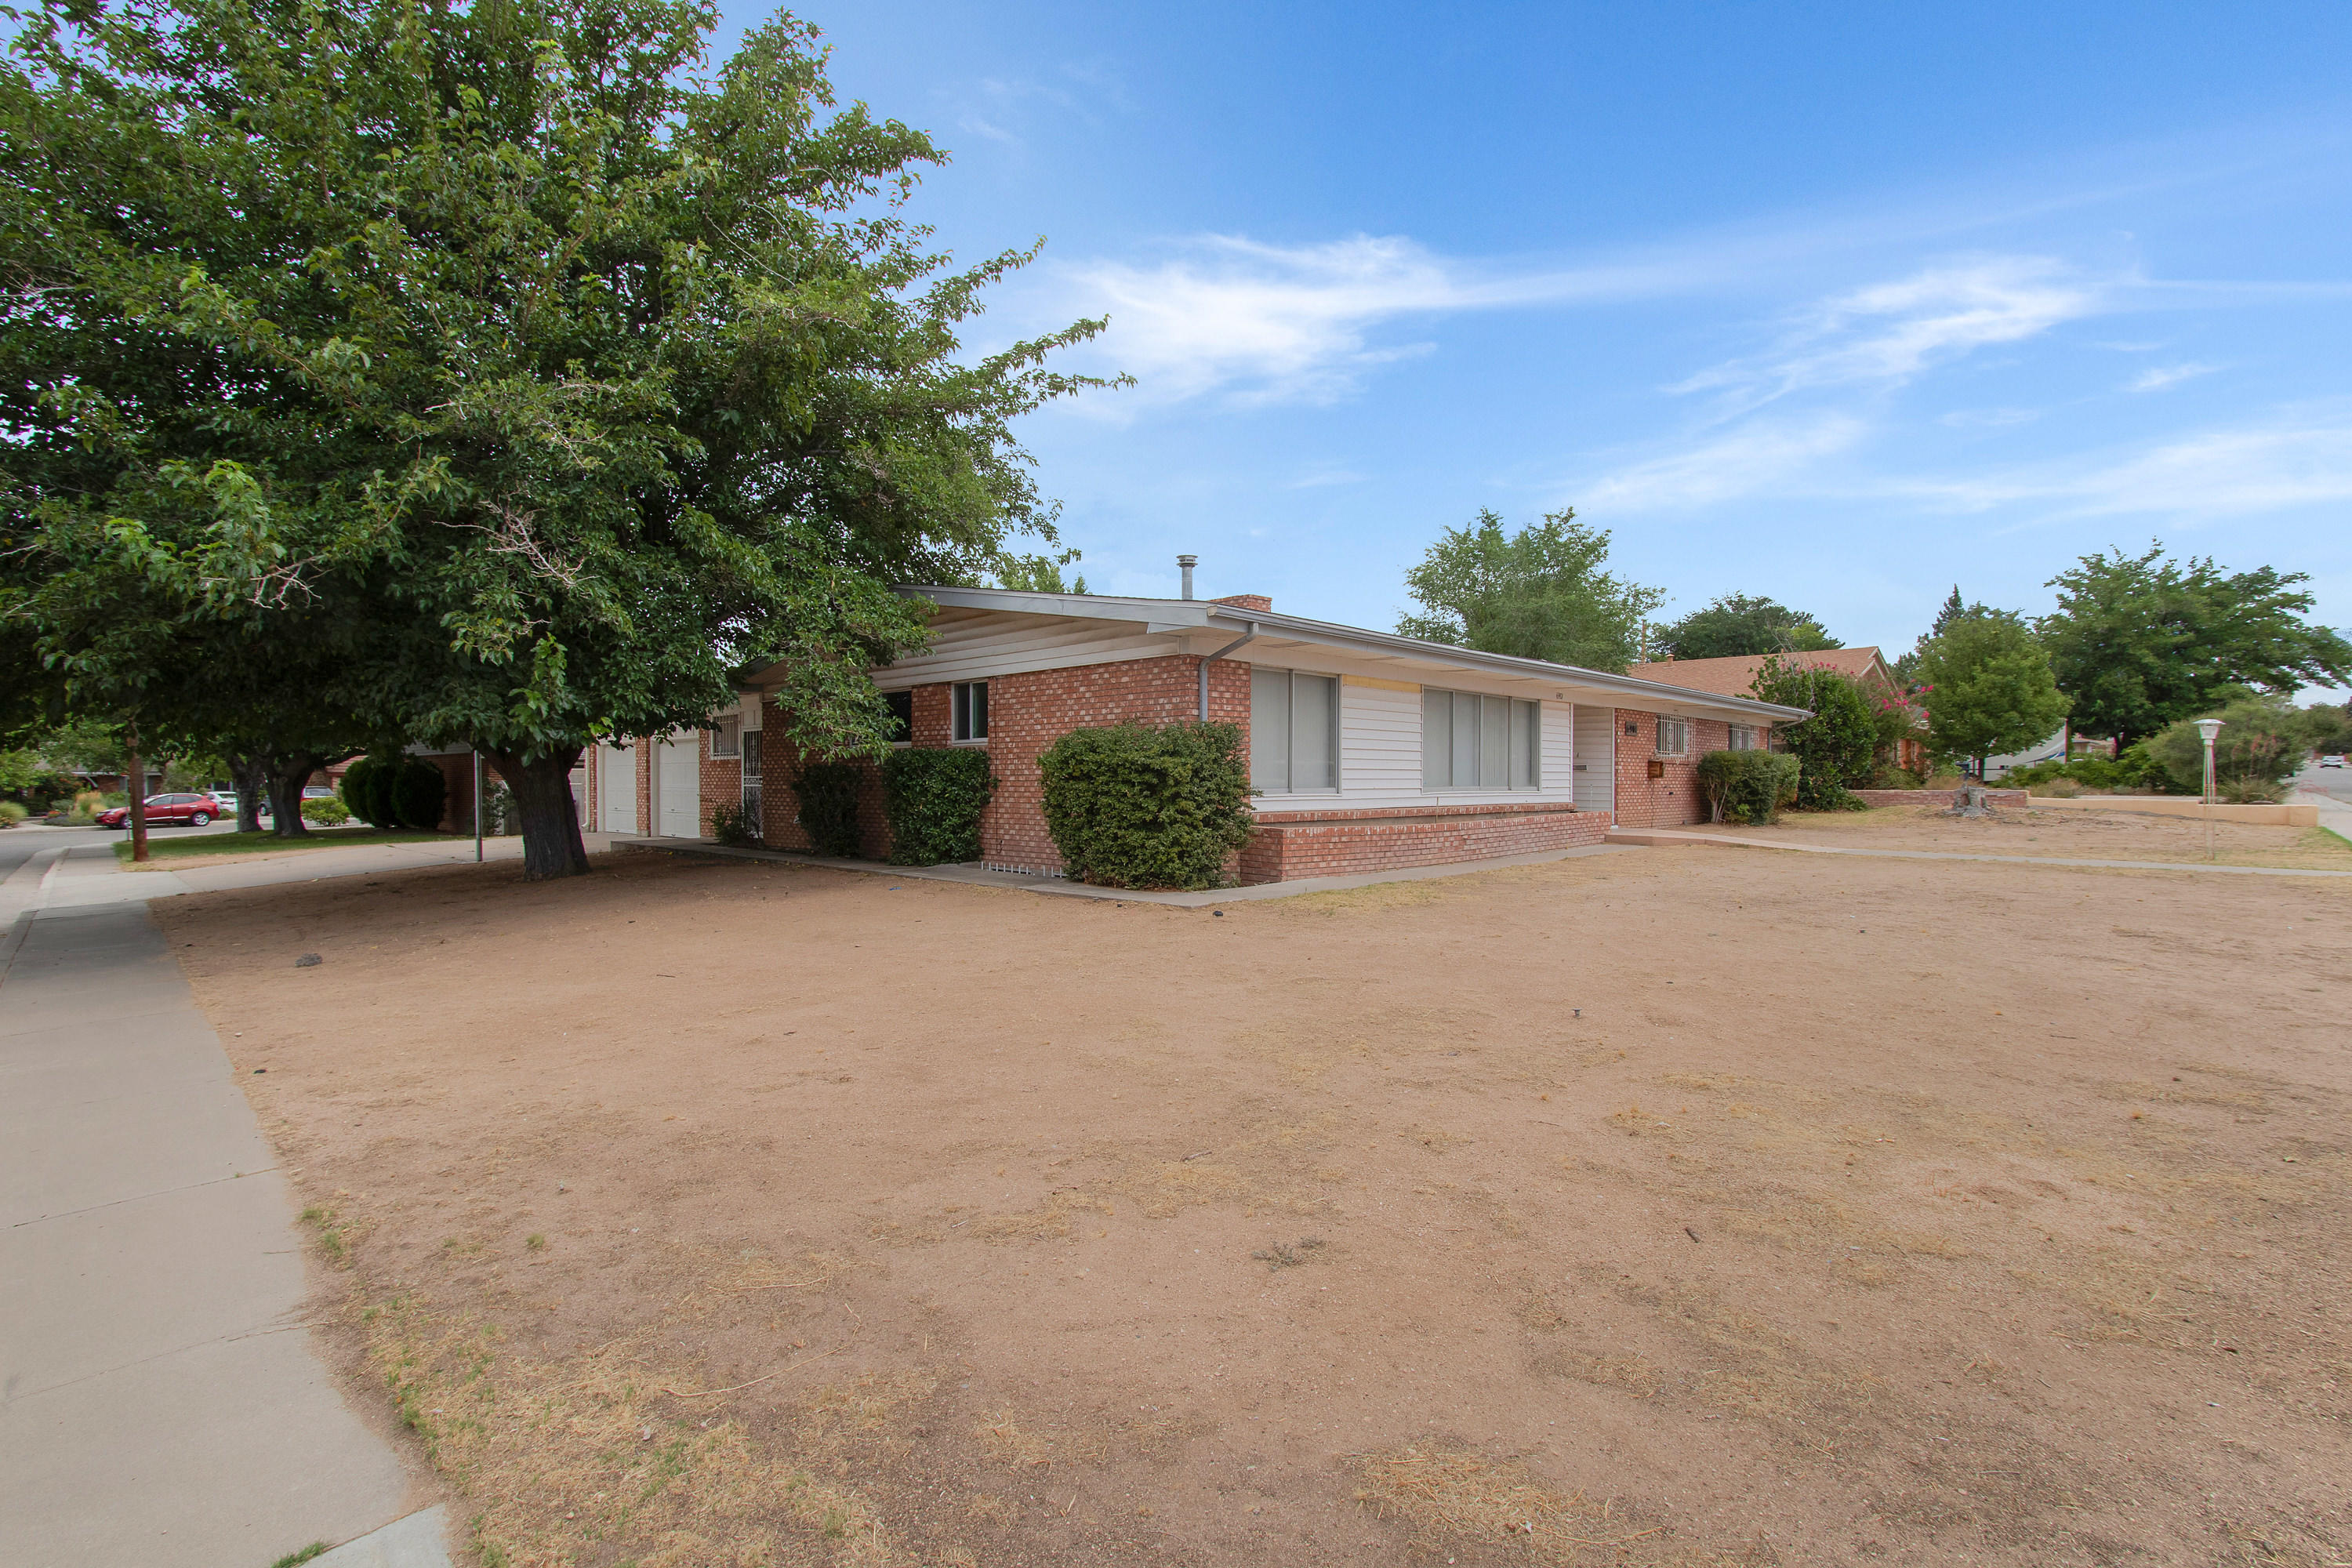 This spacious Mock Home is located on a large corner lot and features 4 large bedrooms, 2 1/2  bathrooms plus a feature unique in Albuquerque homes- a finished basement, an ideal place for a game room, TV room or teen (or adult) hangout. In addition to the family room and living room/dining room combo a breezeway between the garage and home was converted into another large living space. Use as an exercise room, office, hobby room, the possibilities are endless. The oversized garage has a nice workshop area. Energy efficient Champion windows throughout the home. Midtown location in a beautiful established neighborhood minutes to Uptown and freeways.  The great floor plan is waiting for new owners to put their personal touches on it. Schedule your home tour now.